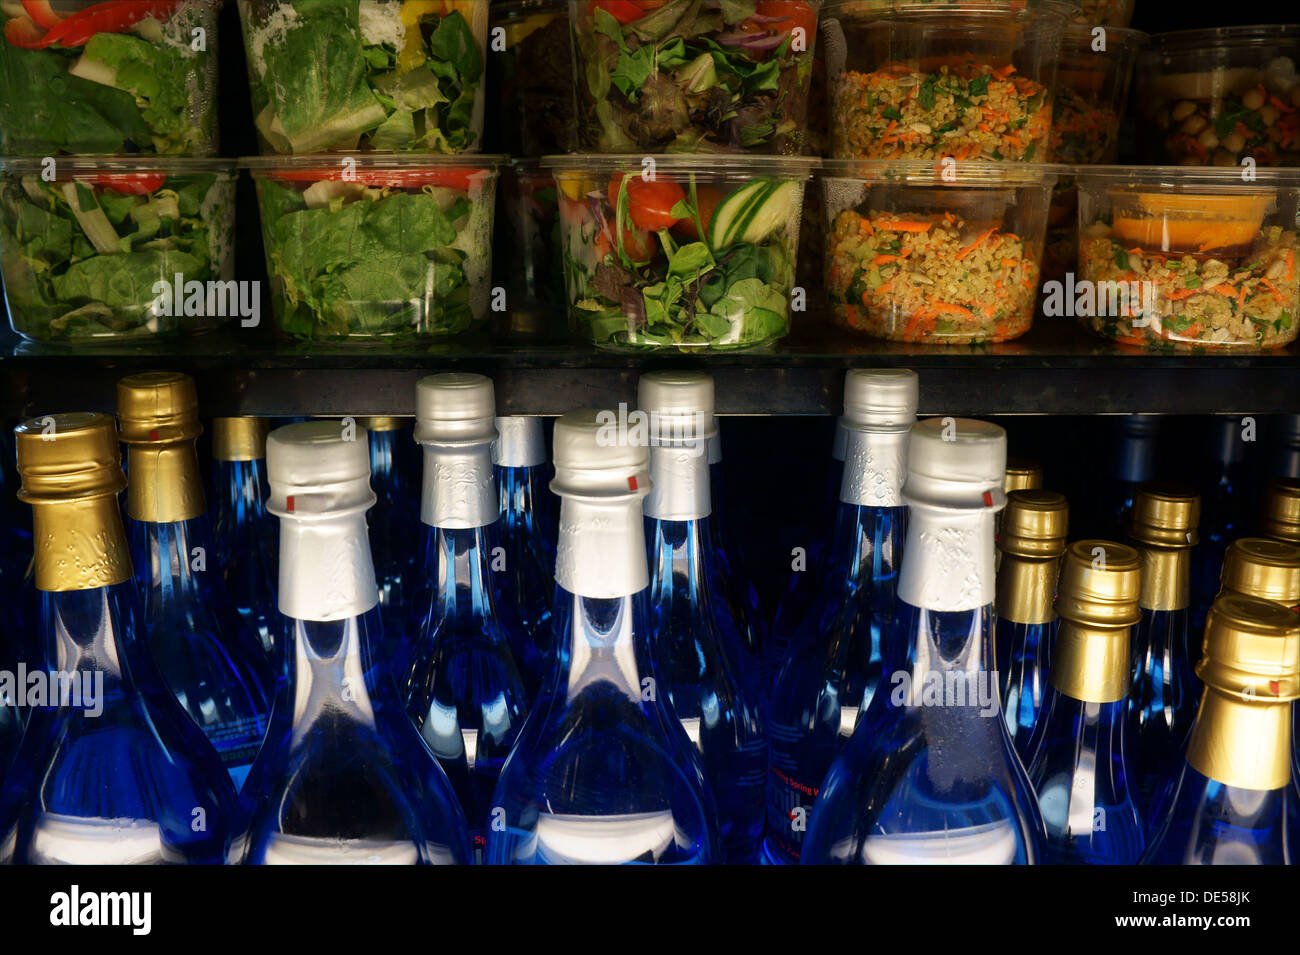 Prepared salads and bottled water in a cafe display case - Stock Image